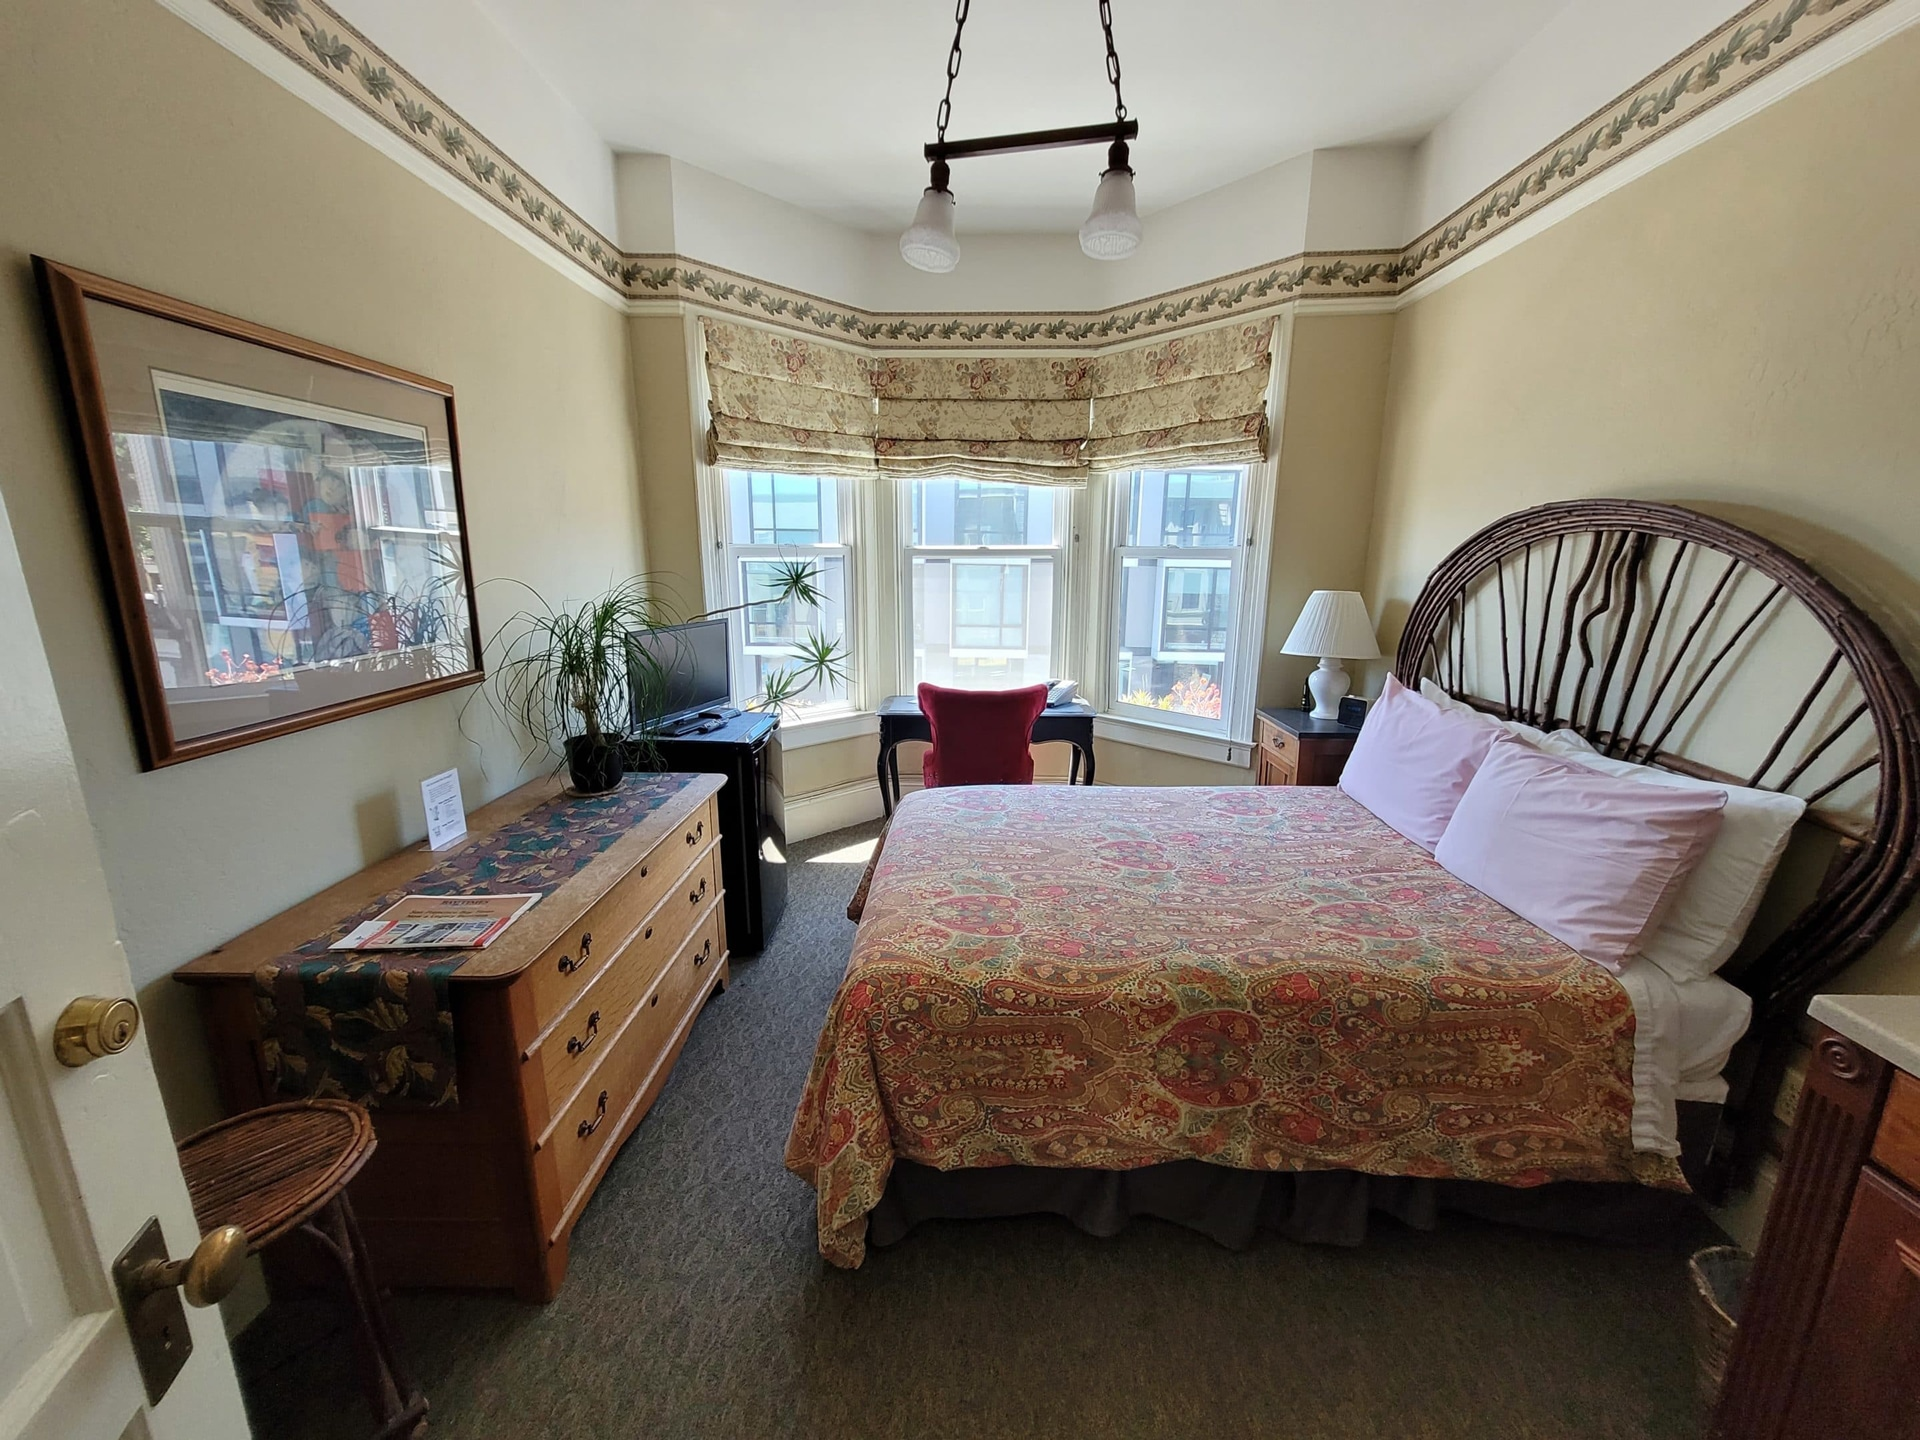 Room With Full Size Bed, The Willows Inn Bed And Breakfast